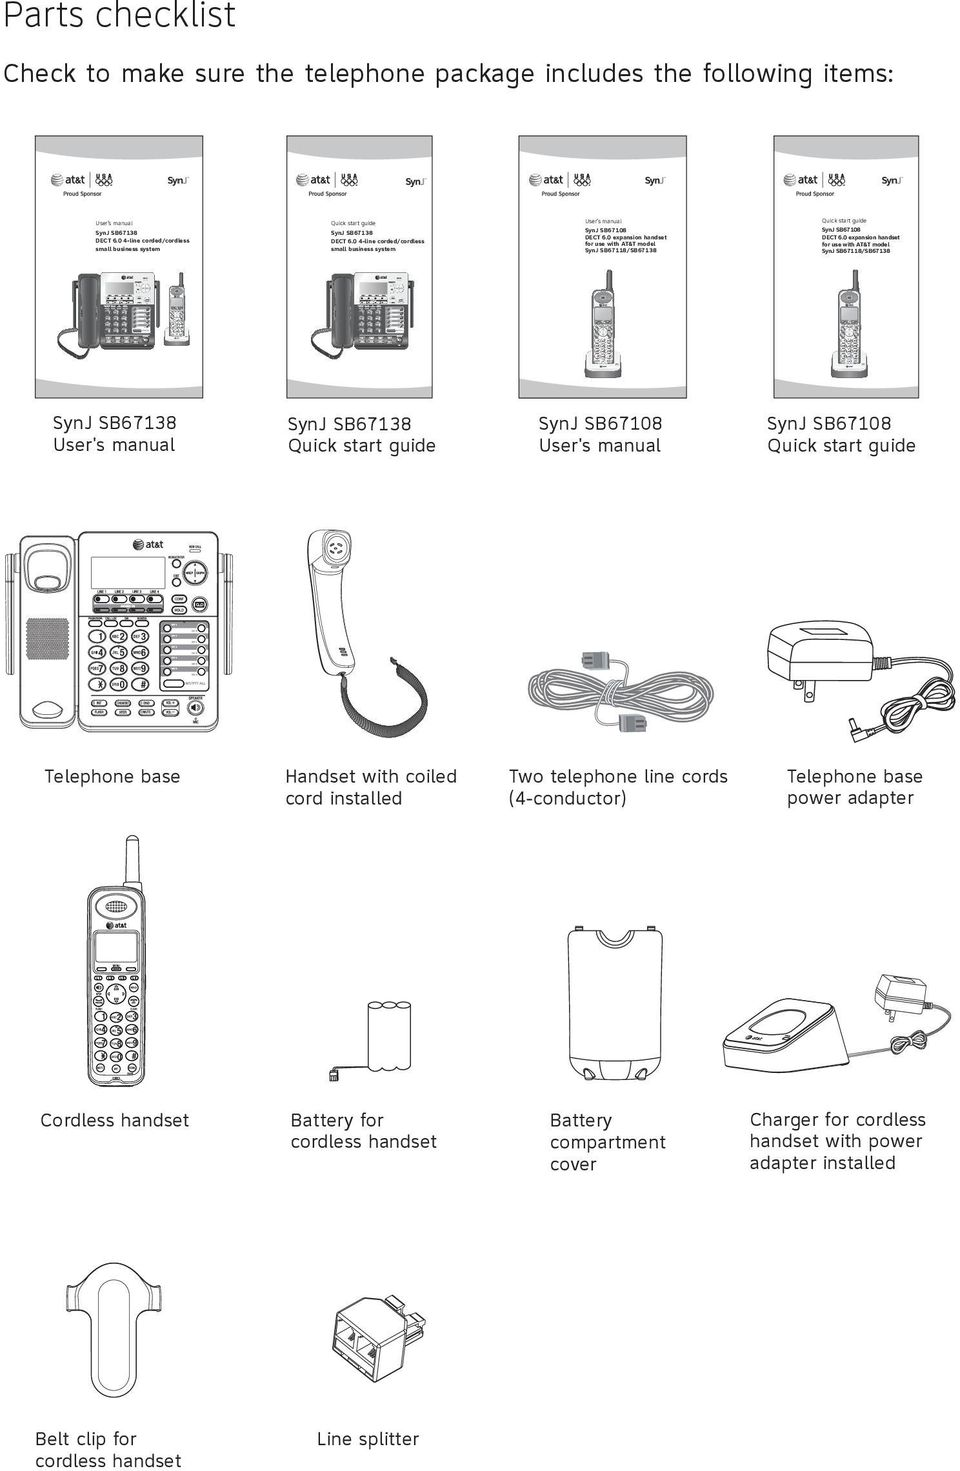 0 4-line corded/cordless small business system SynJ SB67138 User's manual SynJ SB67138 Quick start guide Telephone base Handset with coiled cord installed Cordless handset Battery for cordless